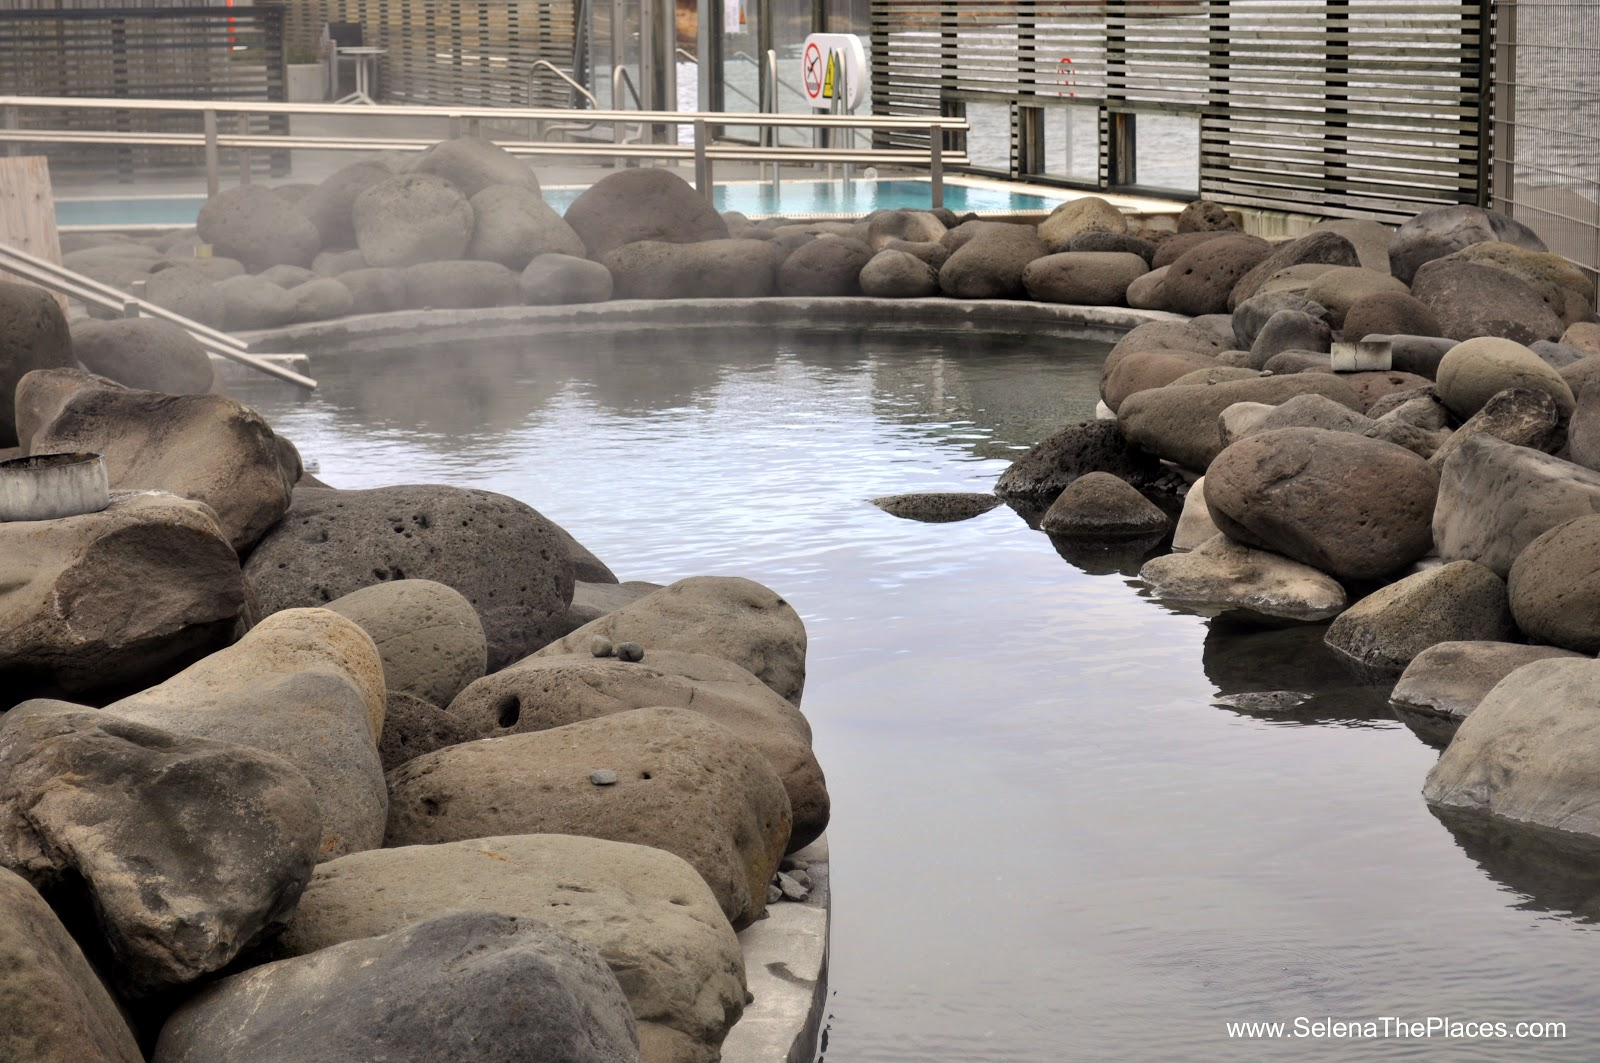 Iceland's Laugarvatn Fontana Geothermal Baths